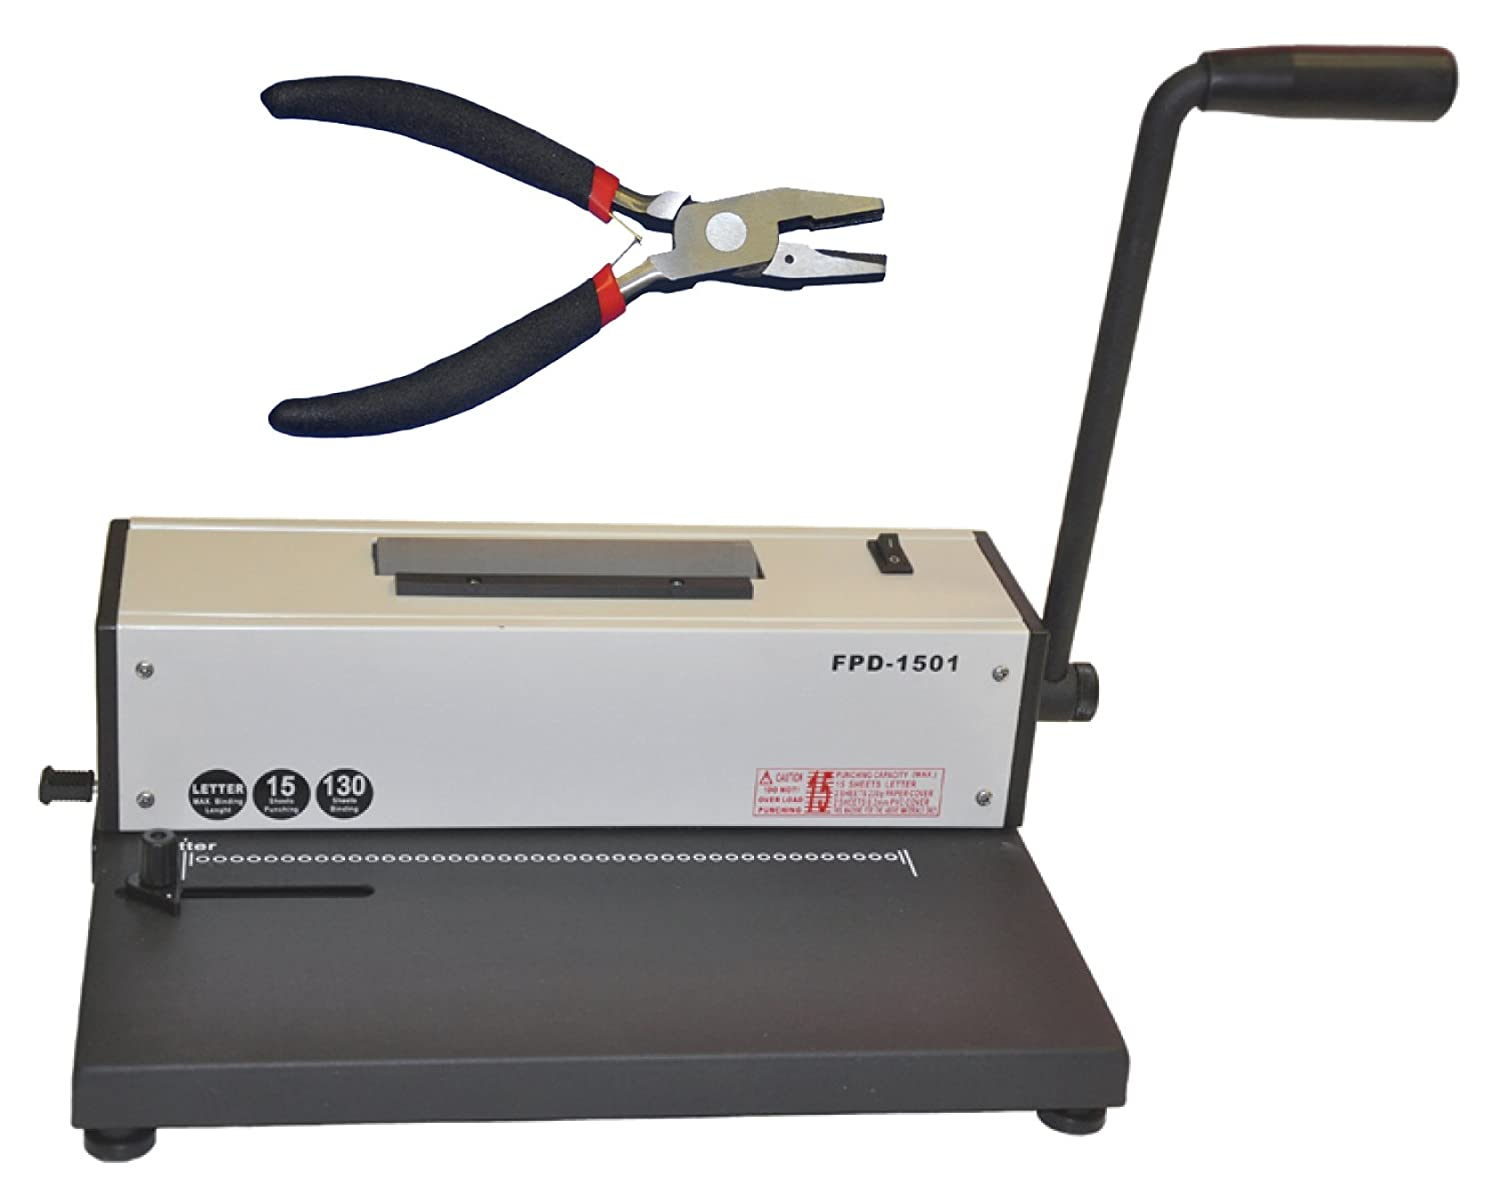 Coil Spiral Binding Machine, Electric Insert Metal Spiral Binder, Pliers EZtransfer